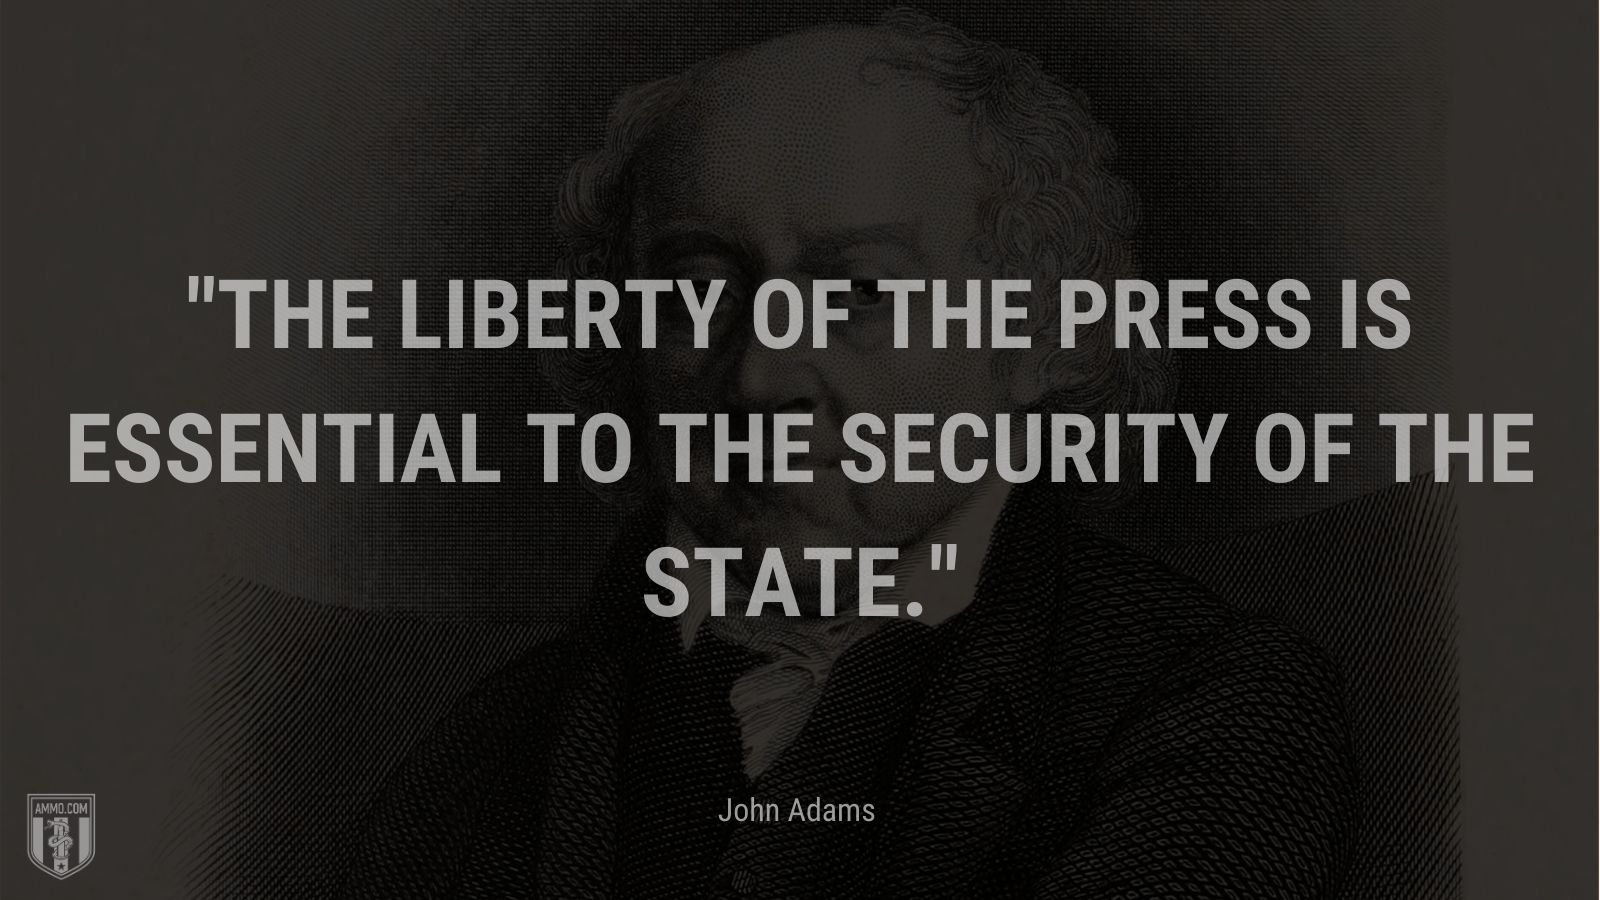 """""""The liberty of the press is essential to the security of the state."""" - John Adams"""